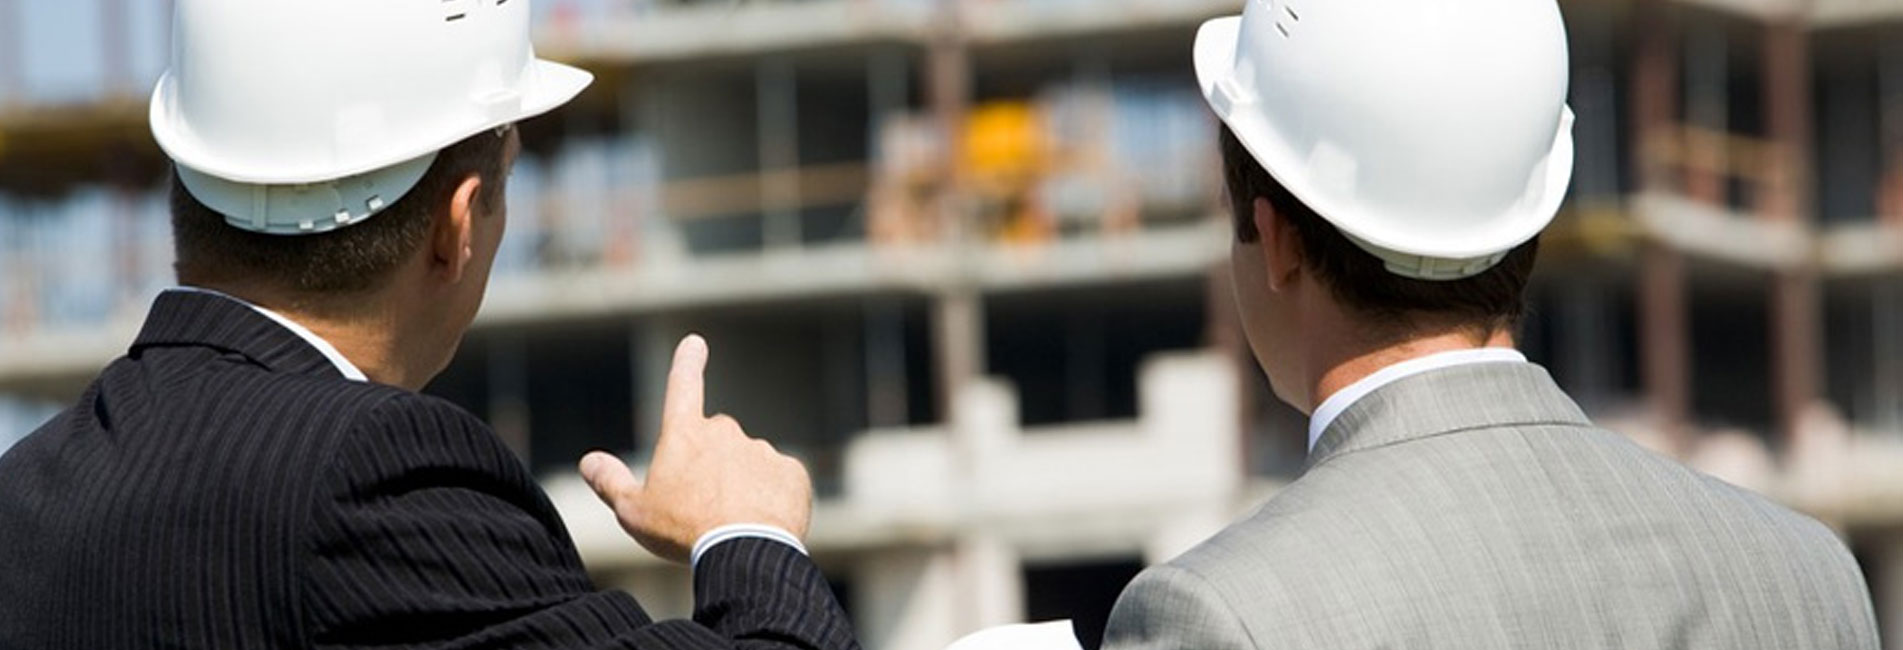 Building Safety Inspectors Albion Park, Property Inspections and Reports Wollongong, Building Consulting Shellharbour